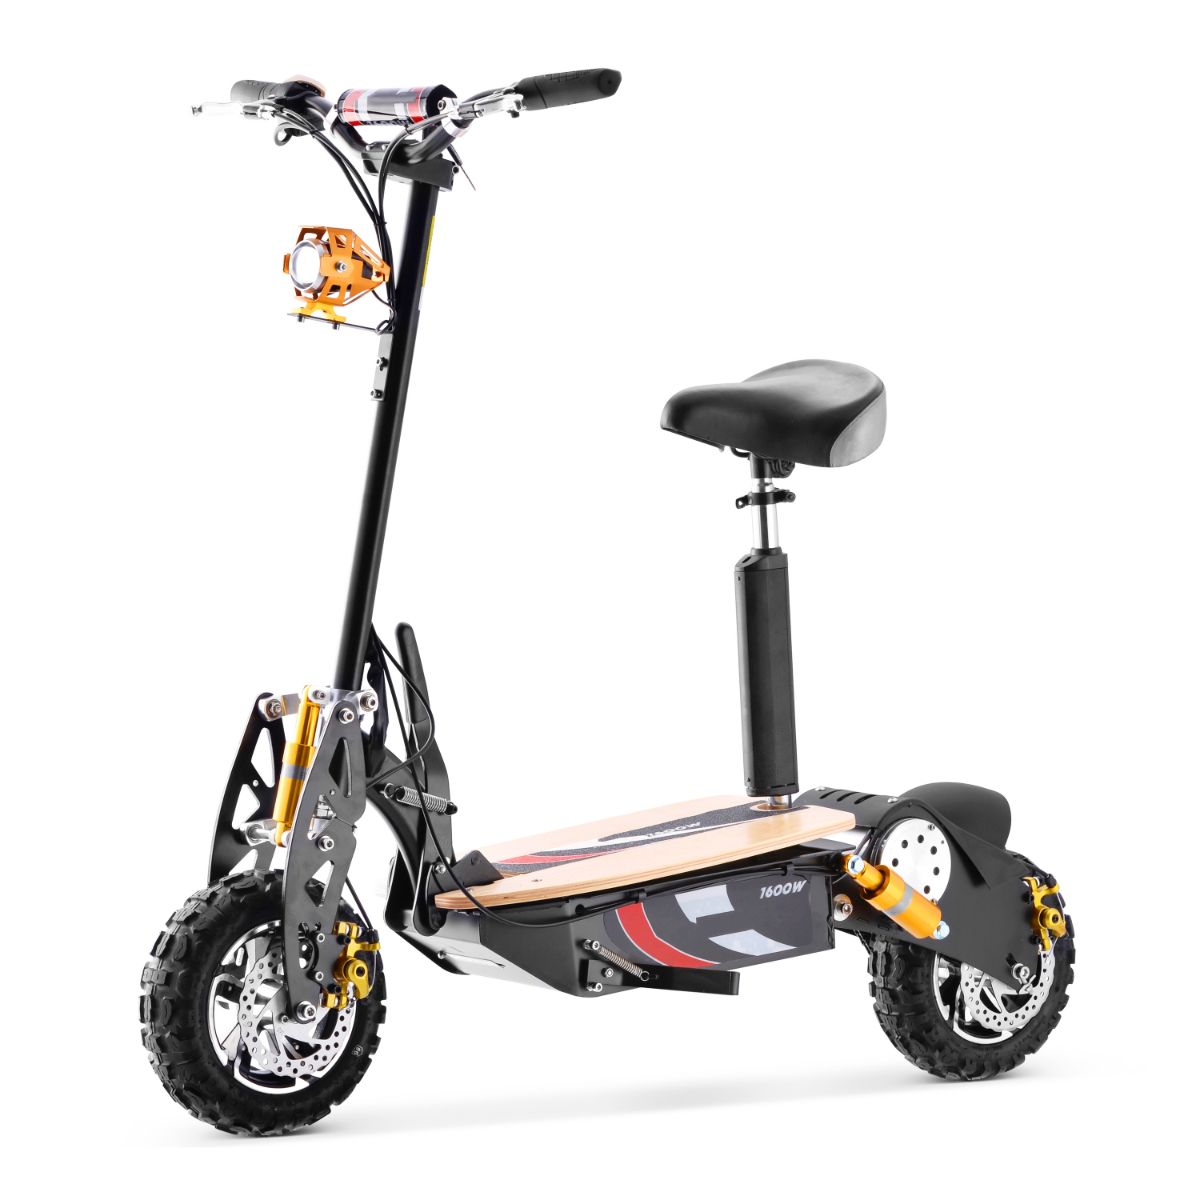 Super Lithium 1500 Brushless Electric Scooter Review